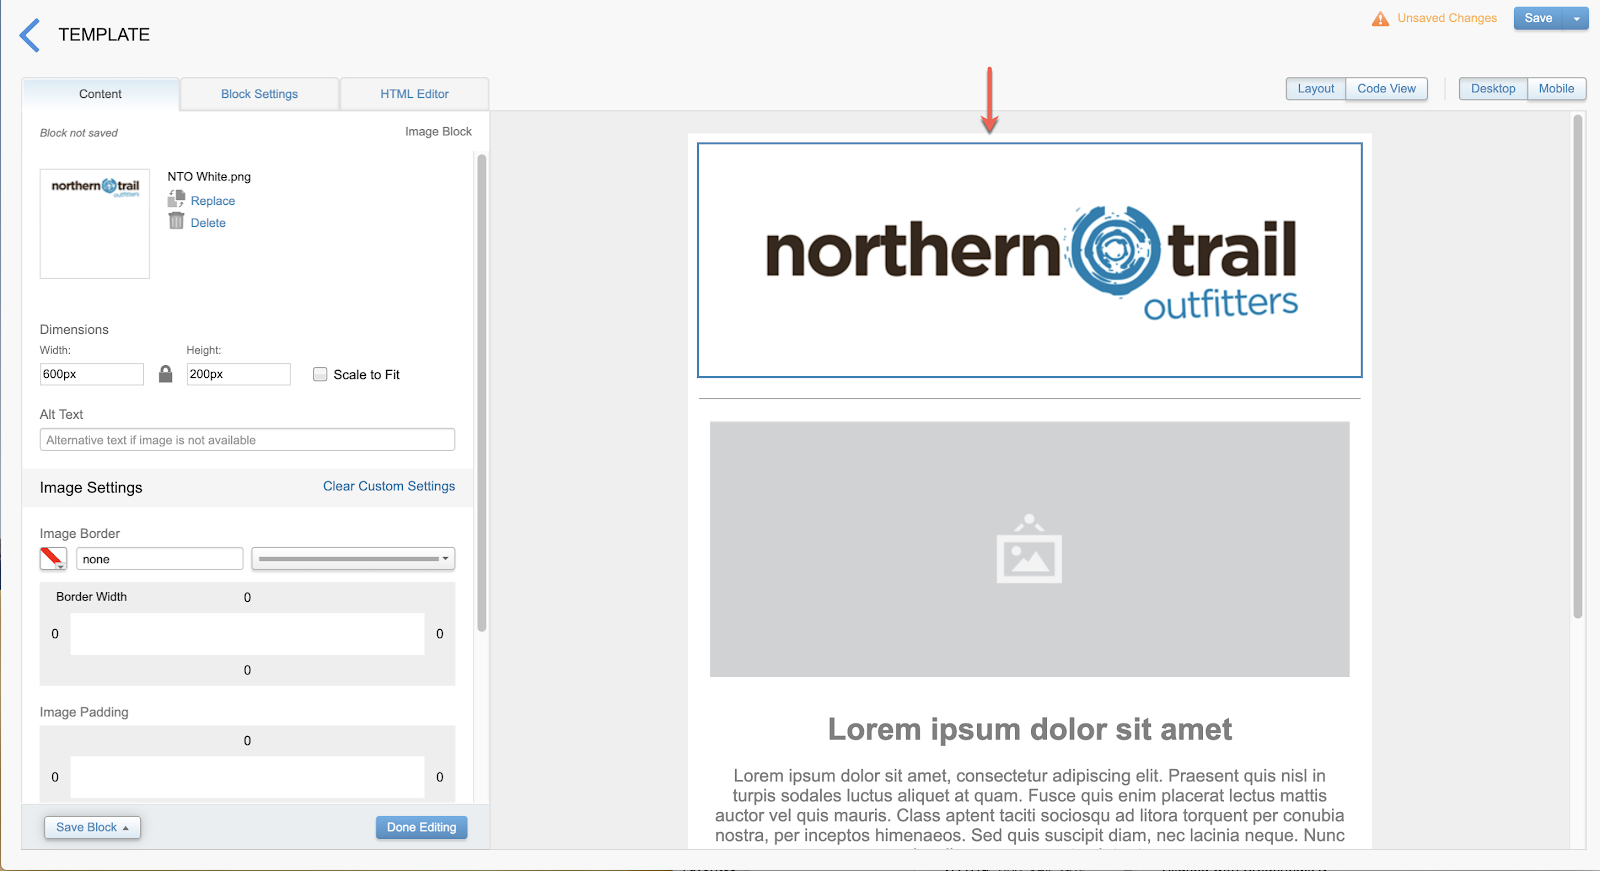 A screenshot showing the email template layout after the Northern Trail Outfitters logo was added to the top content block.